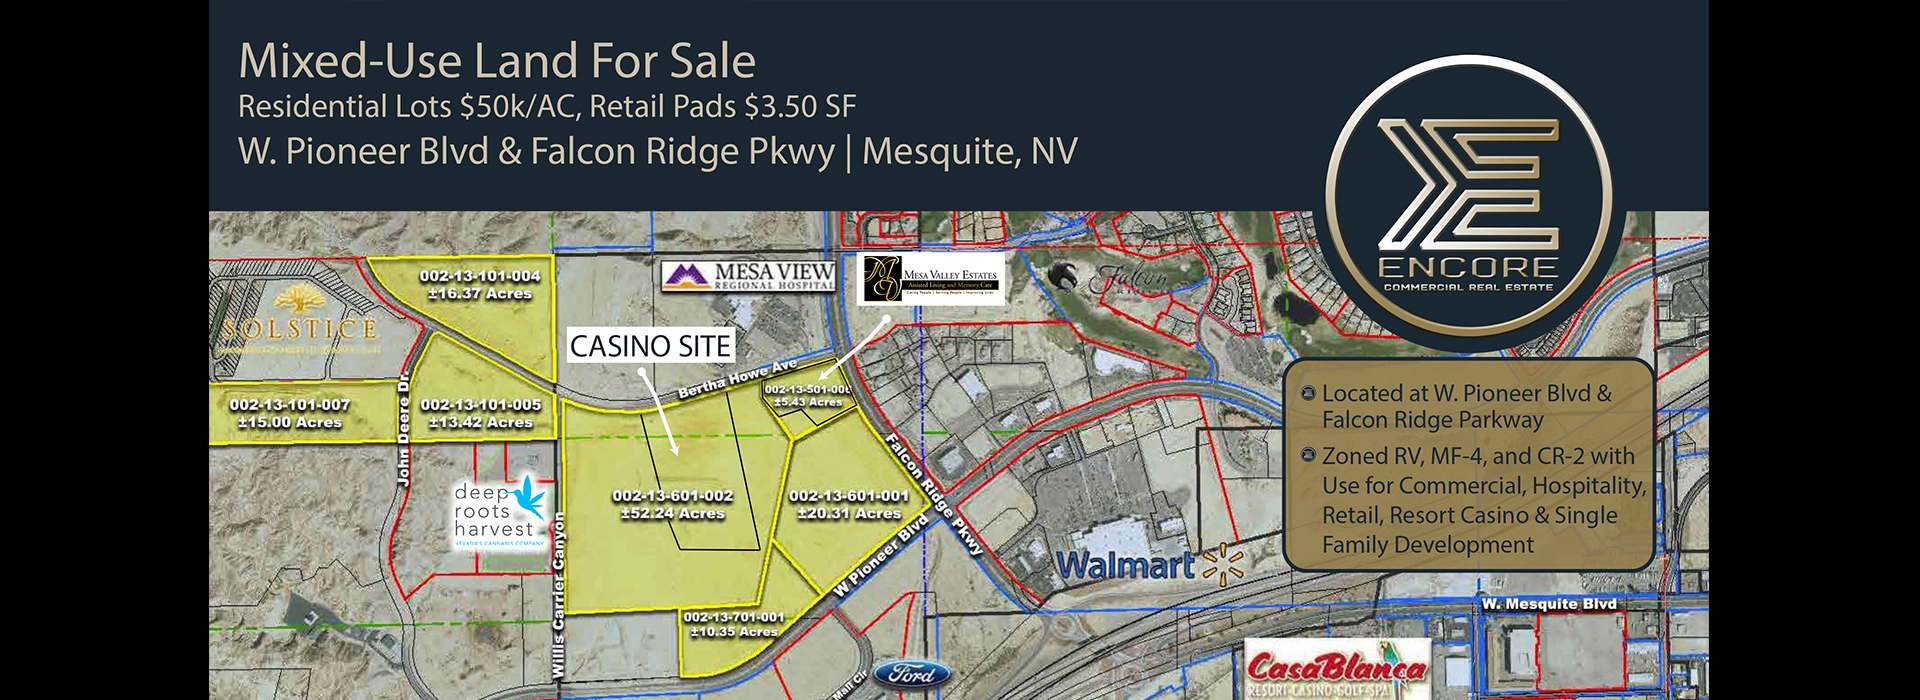 <small>MIXED USE LAND FOR SALE</small>W. PIONEER BLVD. & FALCON RIDGE MESQUITE NV.